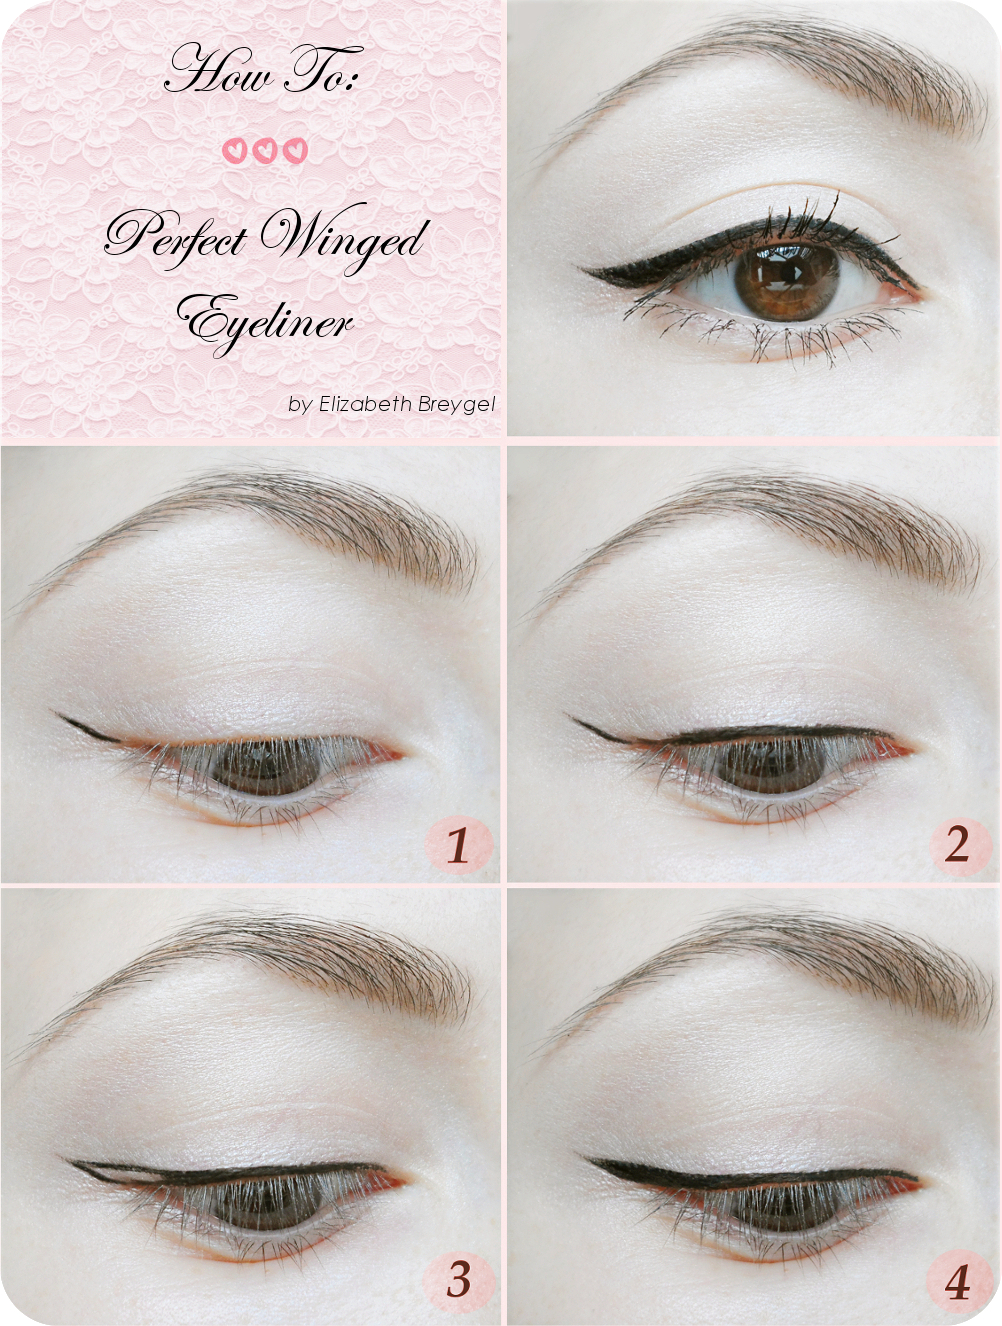 winged eyeliner styles, winged eyeliner tutorial step by step